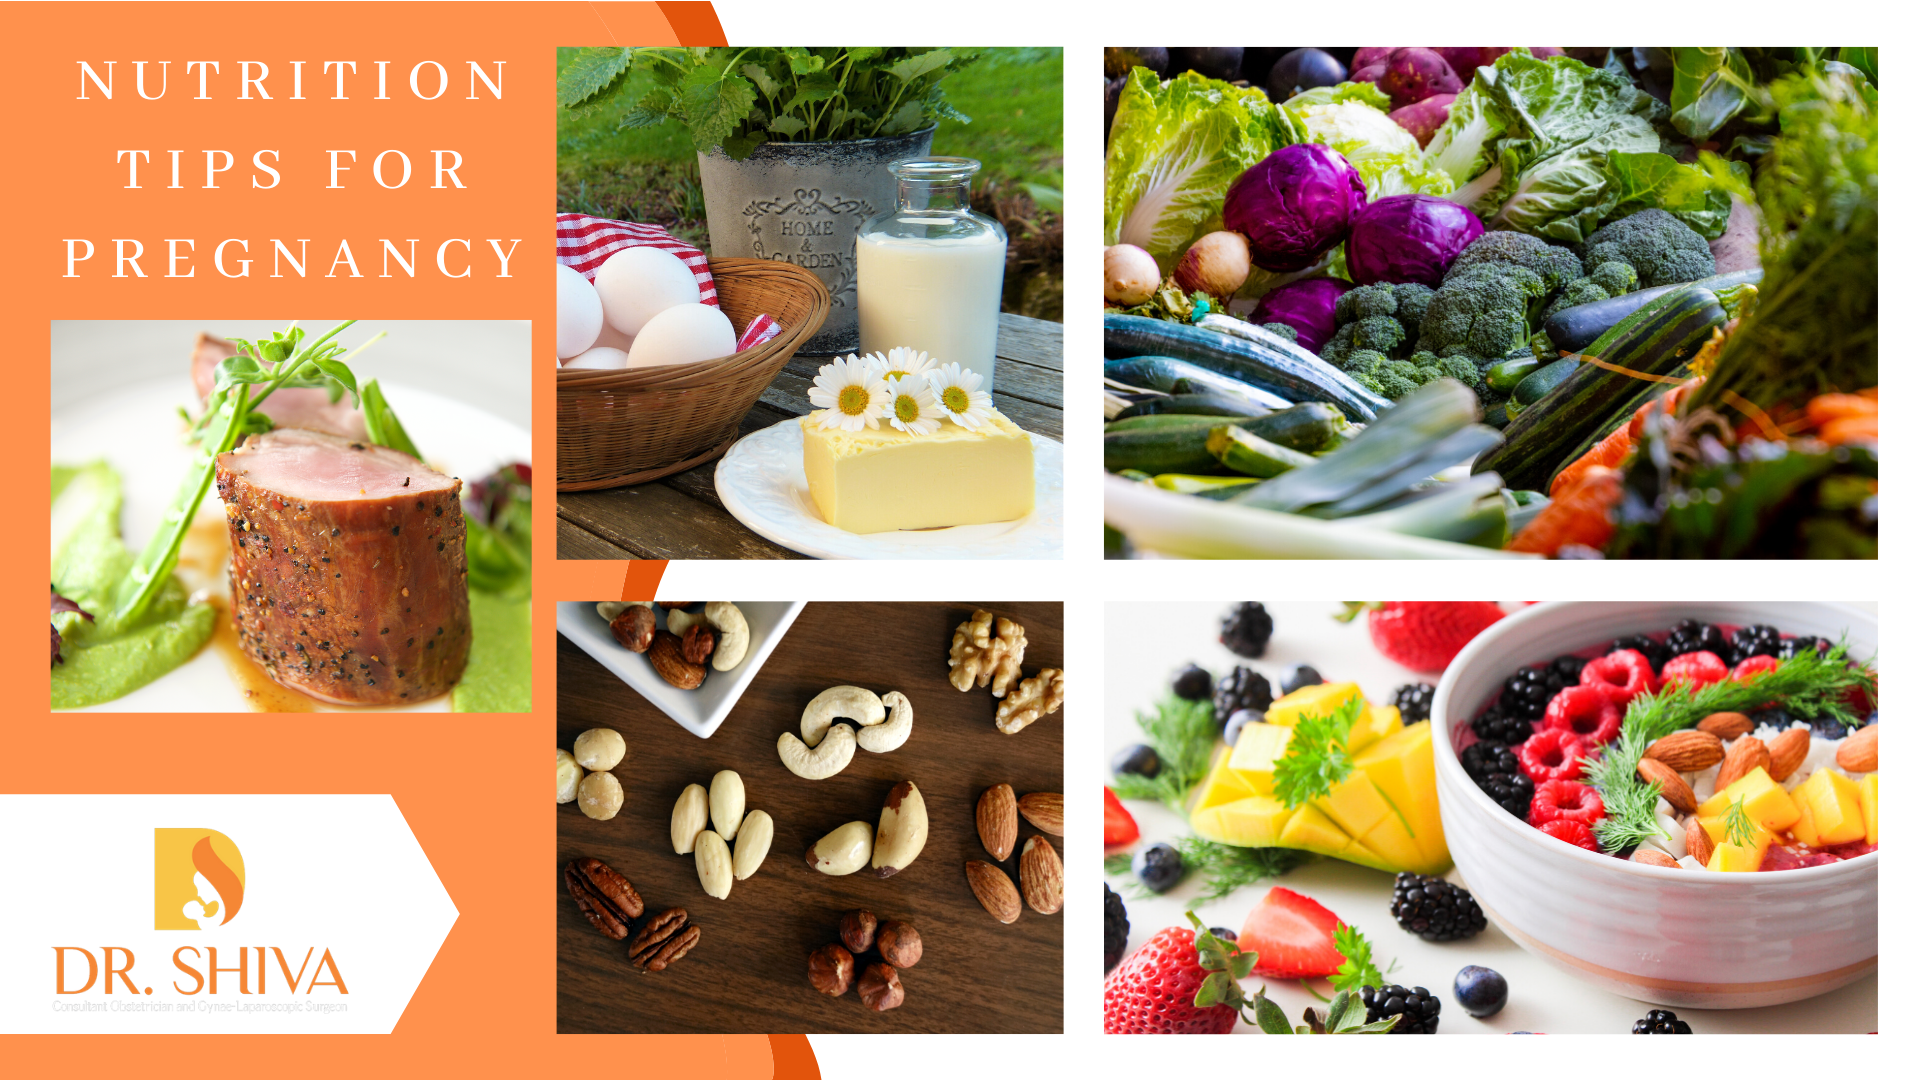 Nutrition Tips for Pregnancy